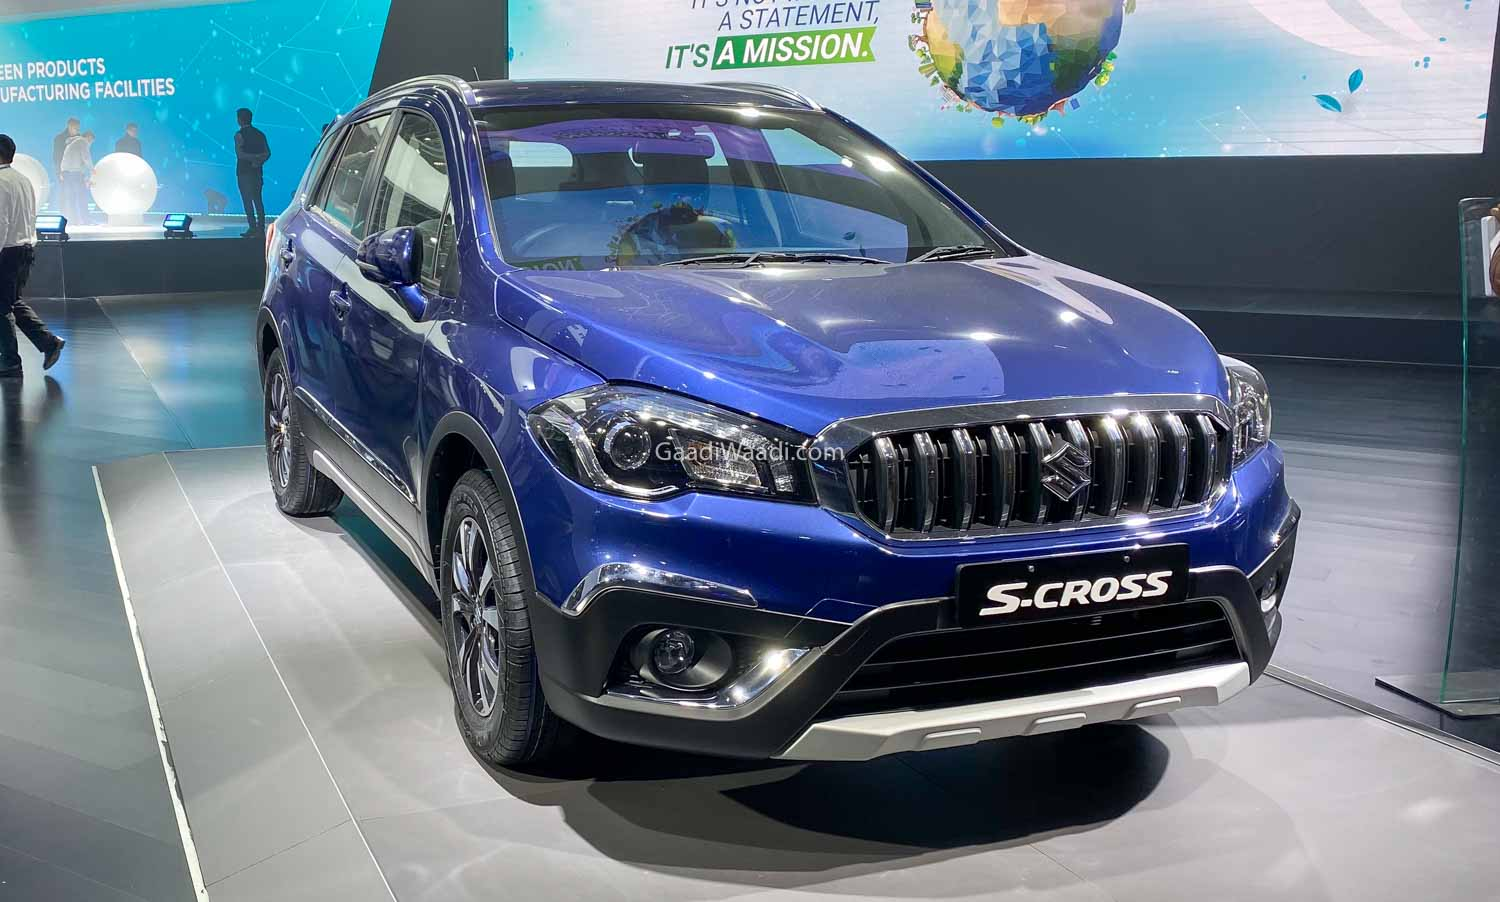 5 New Cars Launching This Month – 2020 Honda City To S-Cross Petrol